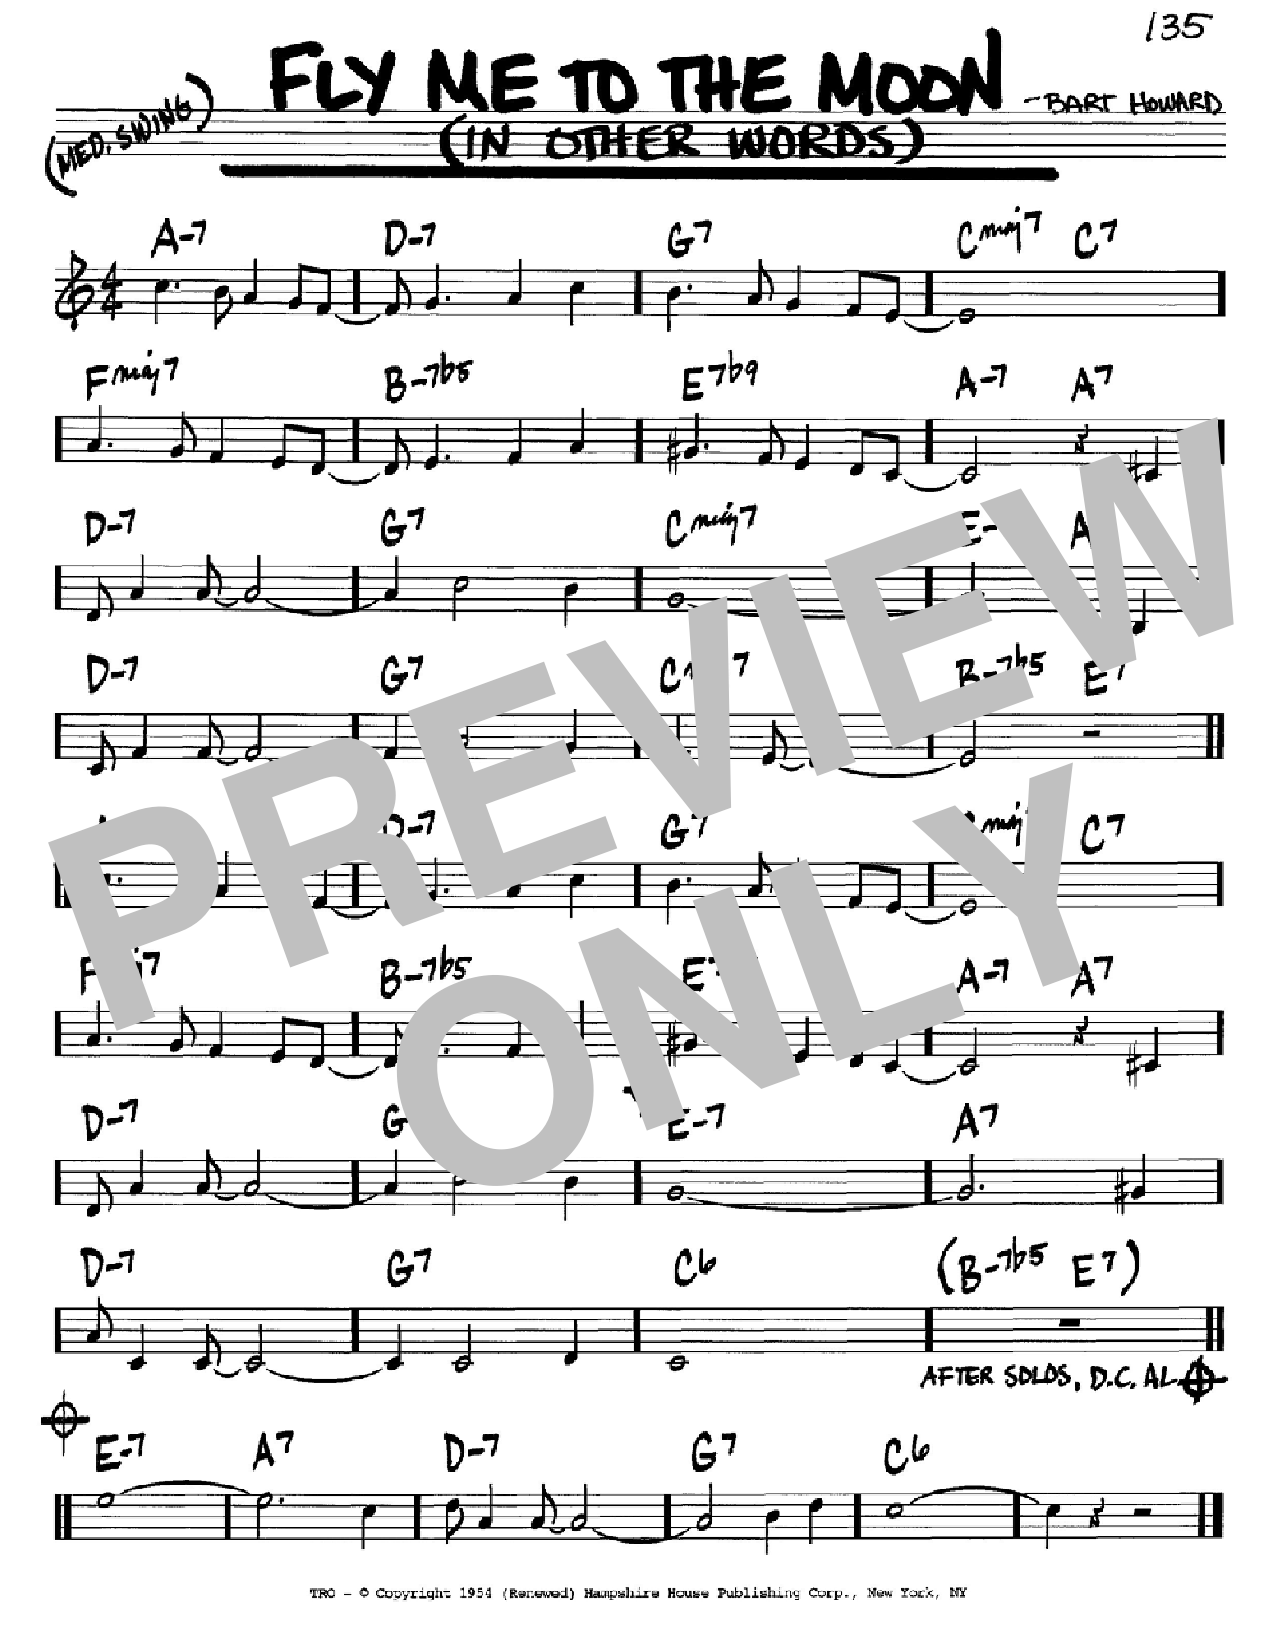 Fly Me To The Moon In Other Words Sheet Music Frank Sinatra